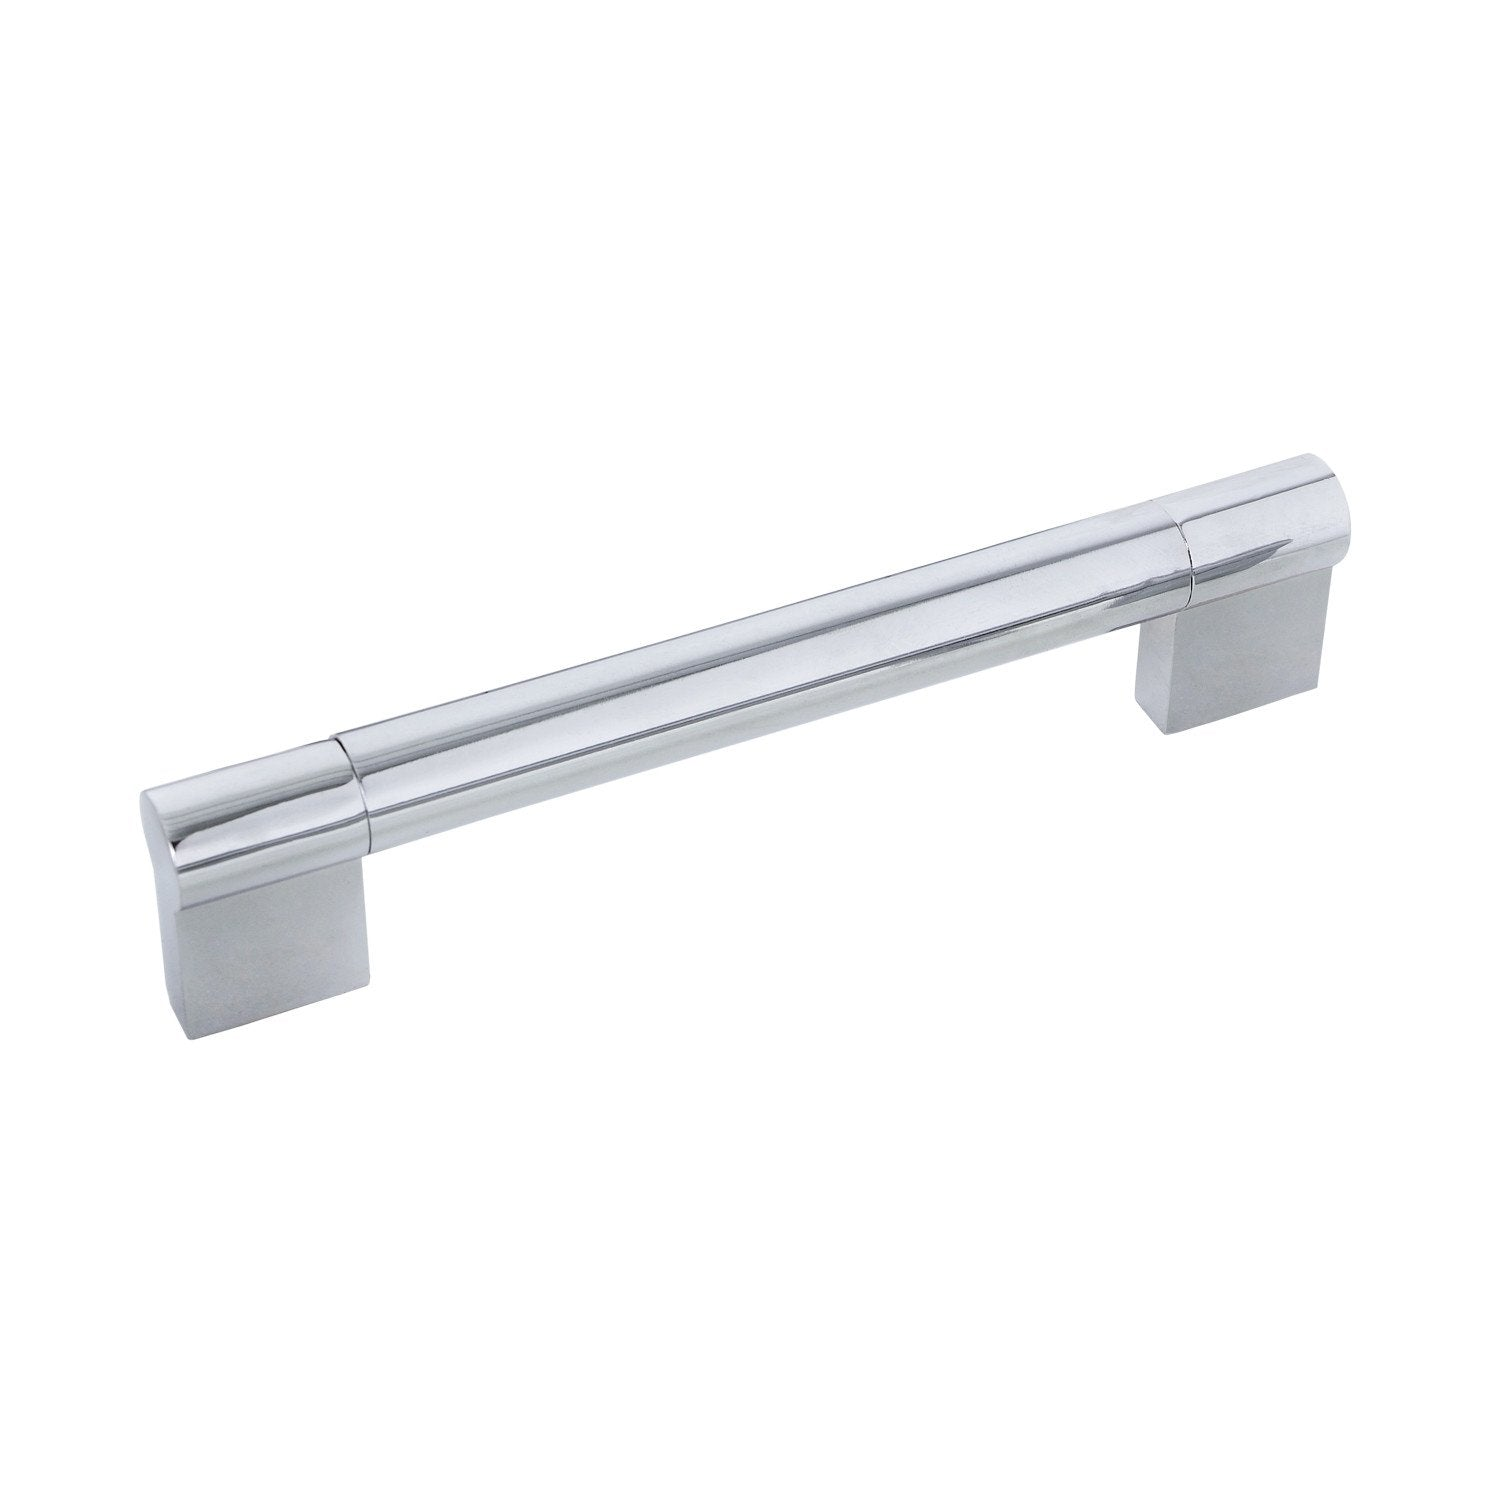 "Loft97 Viva Cabinet Pull, 5"" Center to Center, Polished Chrome"